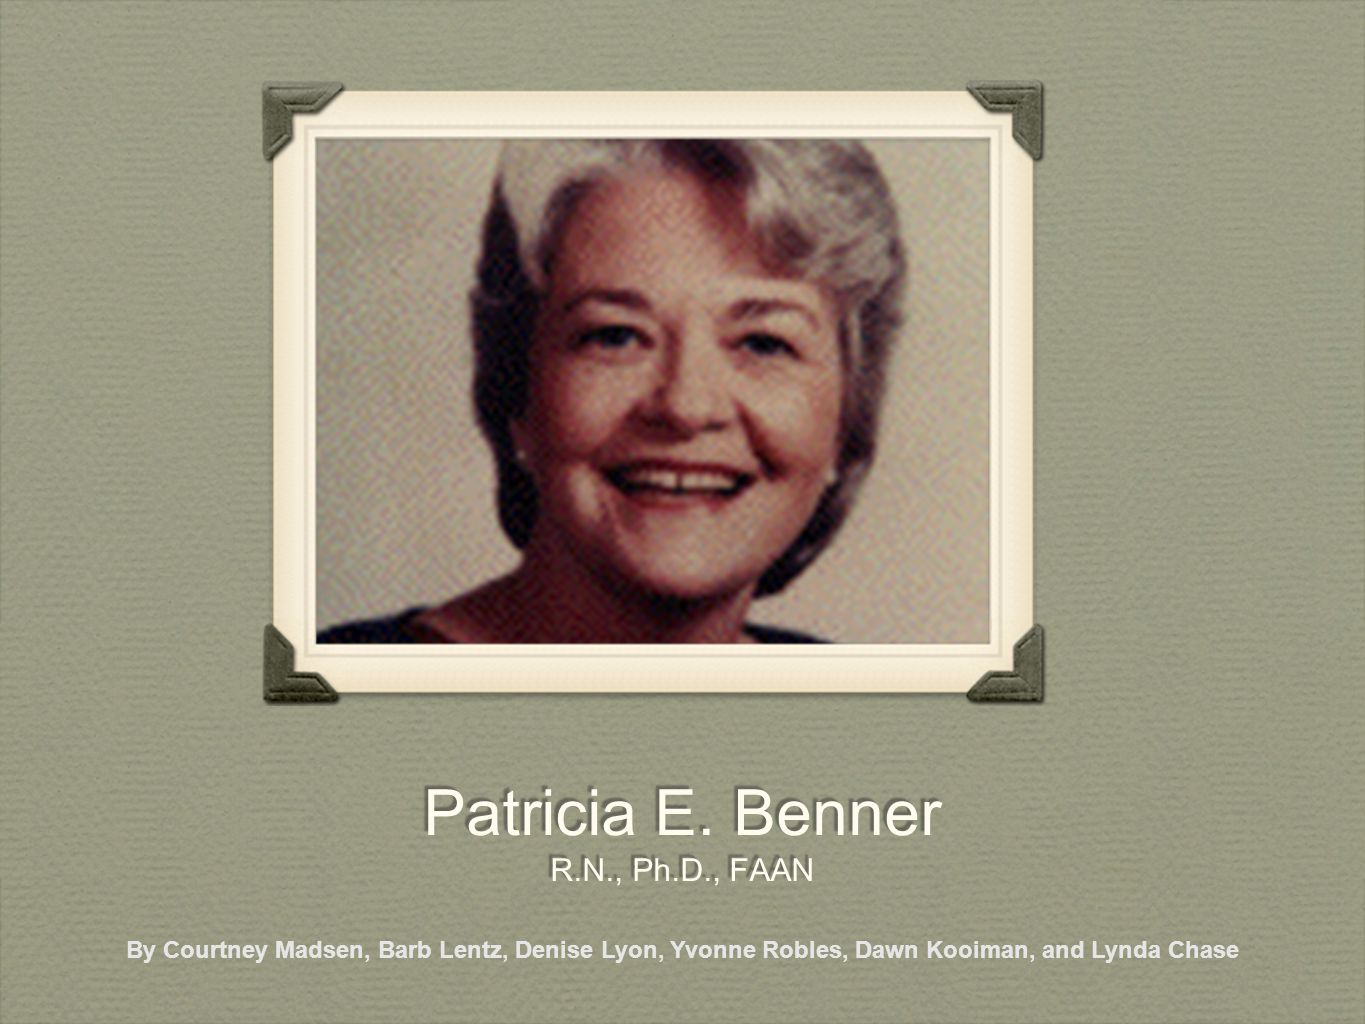 patricia e benner r n ph d faan ppt download